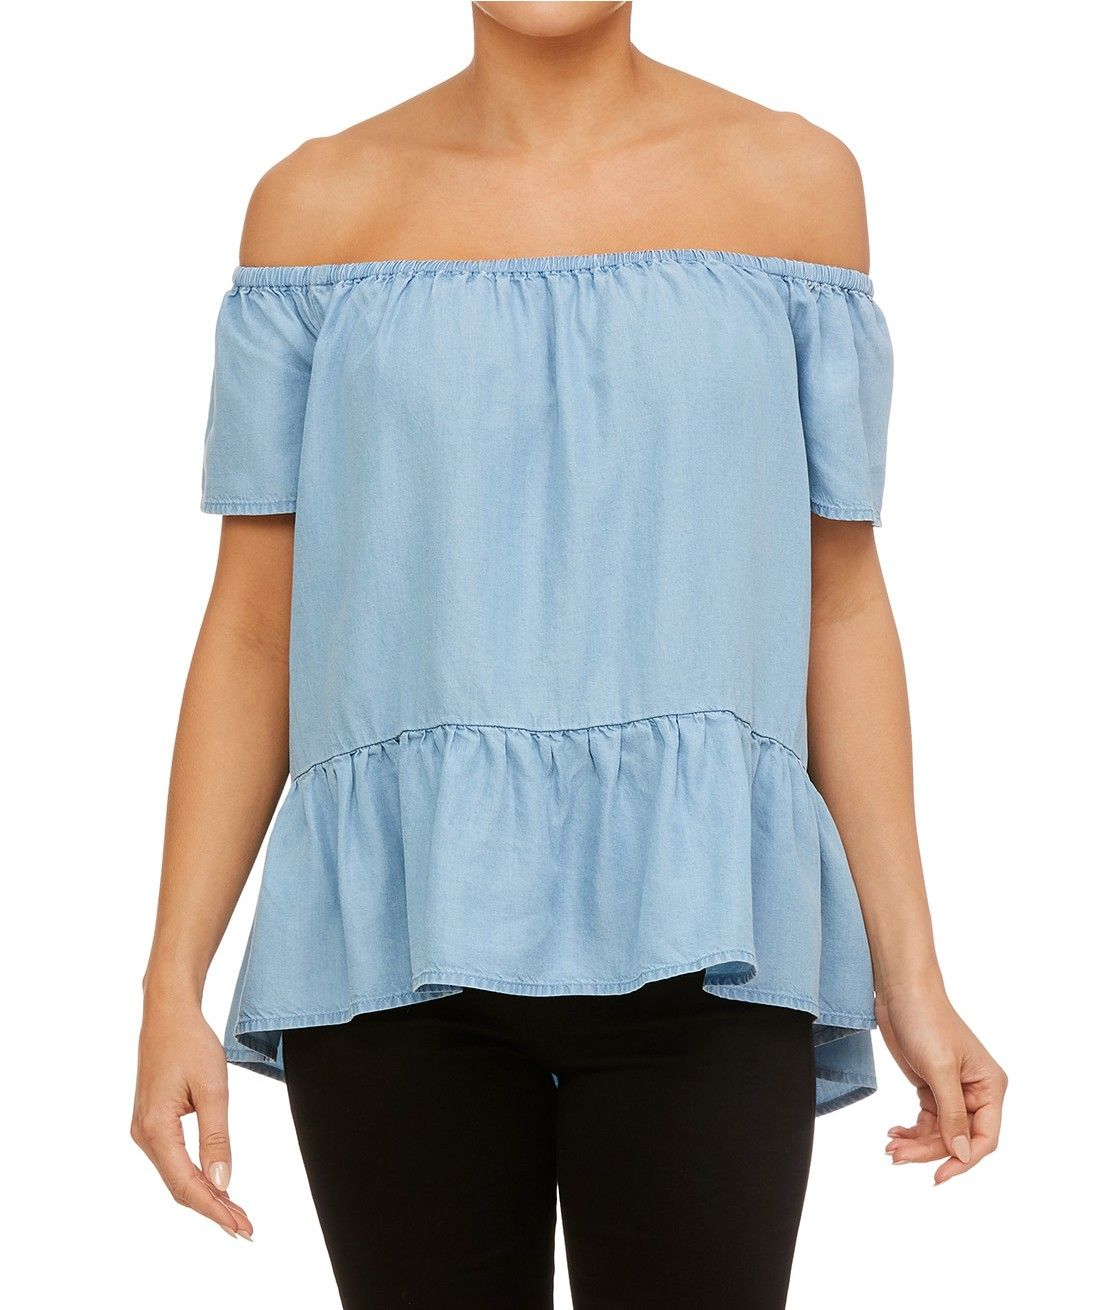 e87d16128ea18 Bare your shoulders with the Off Shoulder Swing Top. This mid blue lyocel  top features